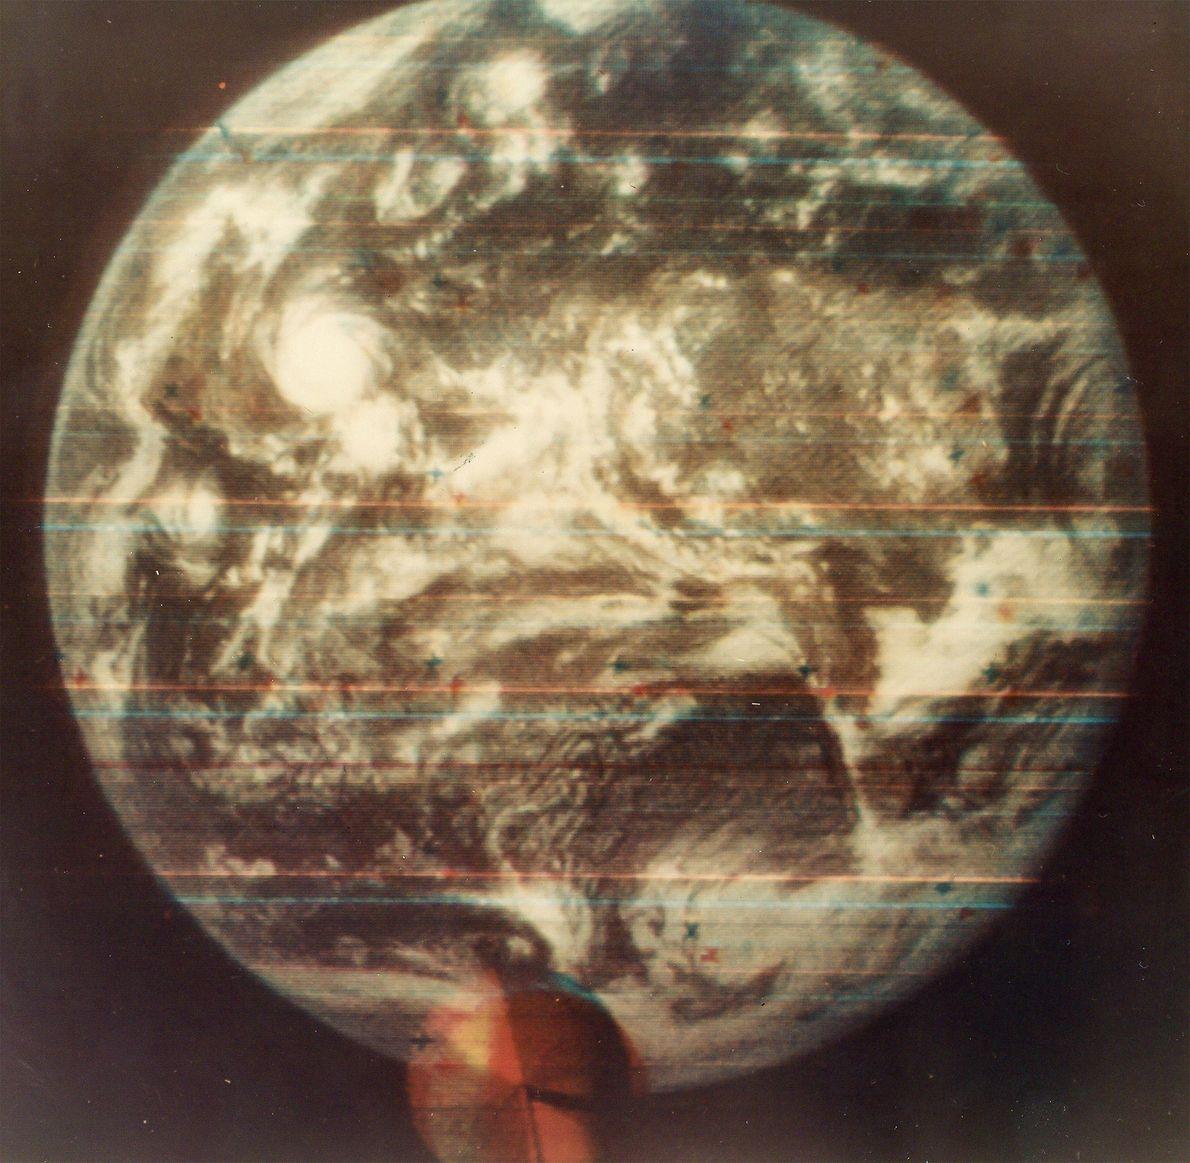 The 1967 image was the first colour photo taken of Earth from space.